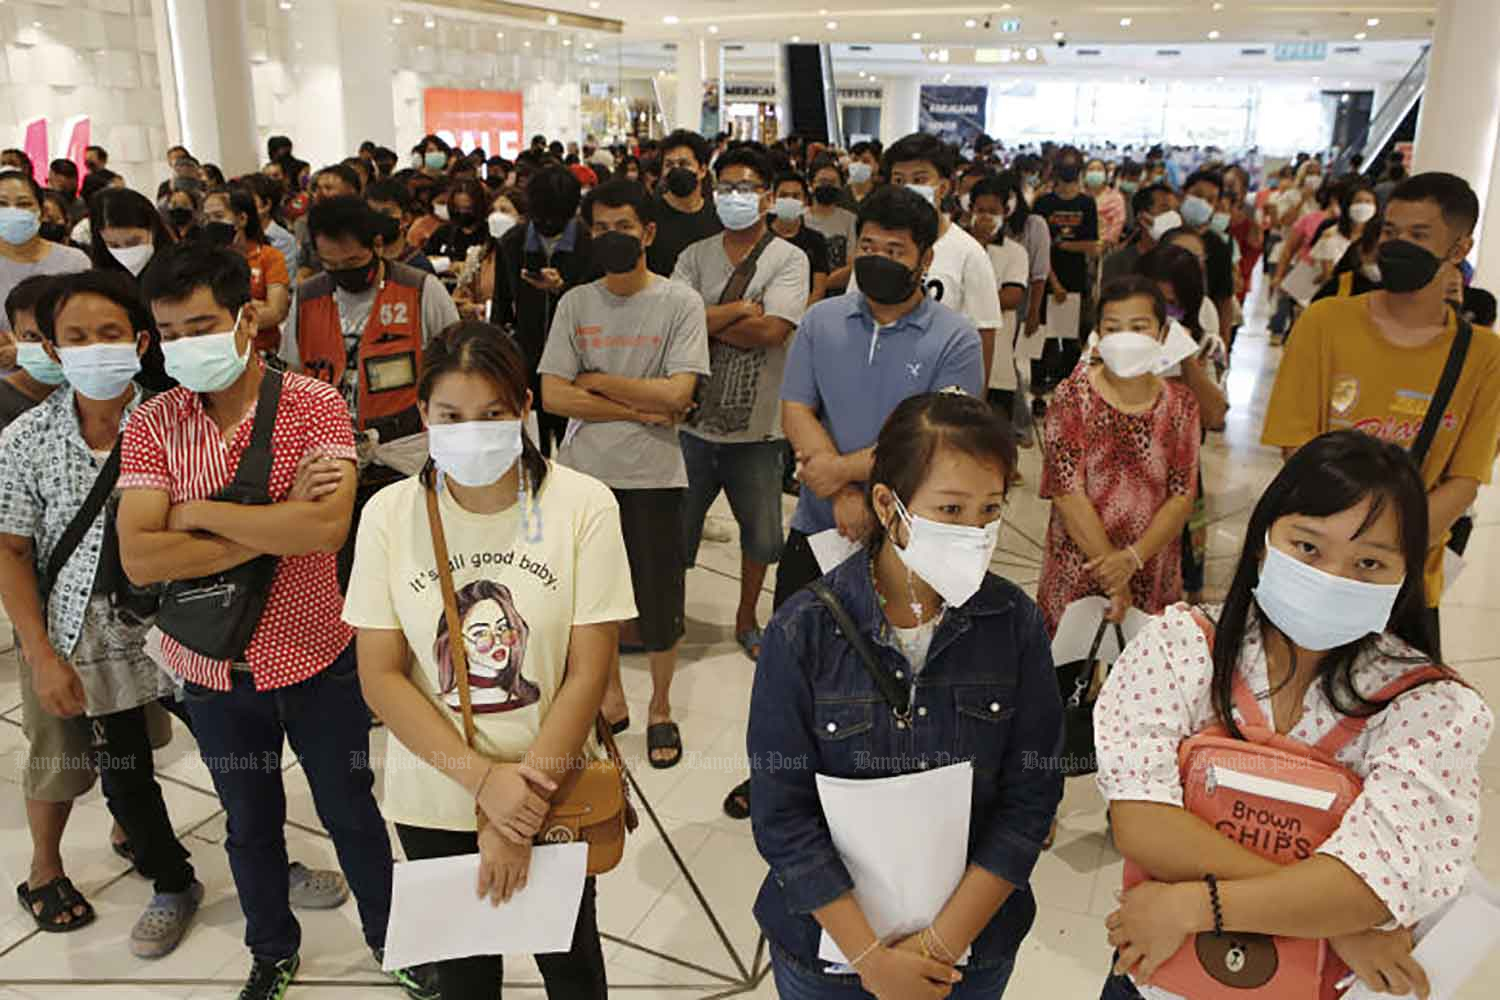 People wait for their turn to be vaccinated on Monday at Future Park shopping centre in Pathum Thani, a venue which is capable of inoculating up to 4,000 people a day. Pathum Thani is aiming to inoculate 1 million people. (Photo: Apichit Jinakul)